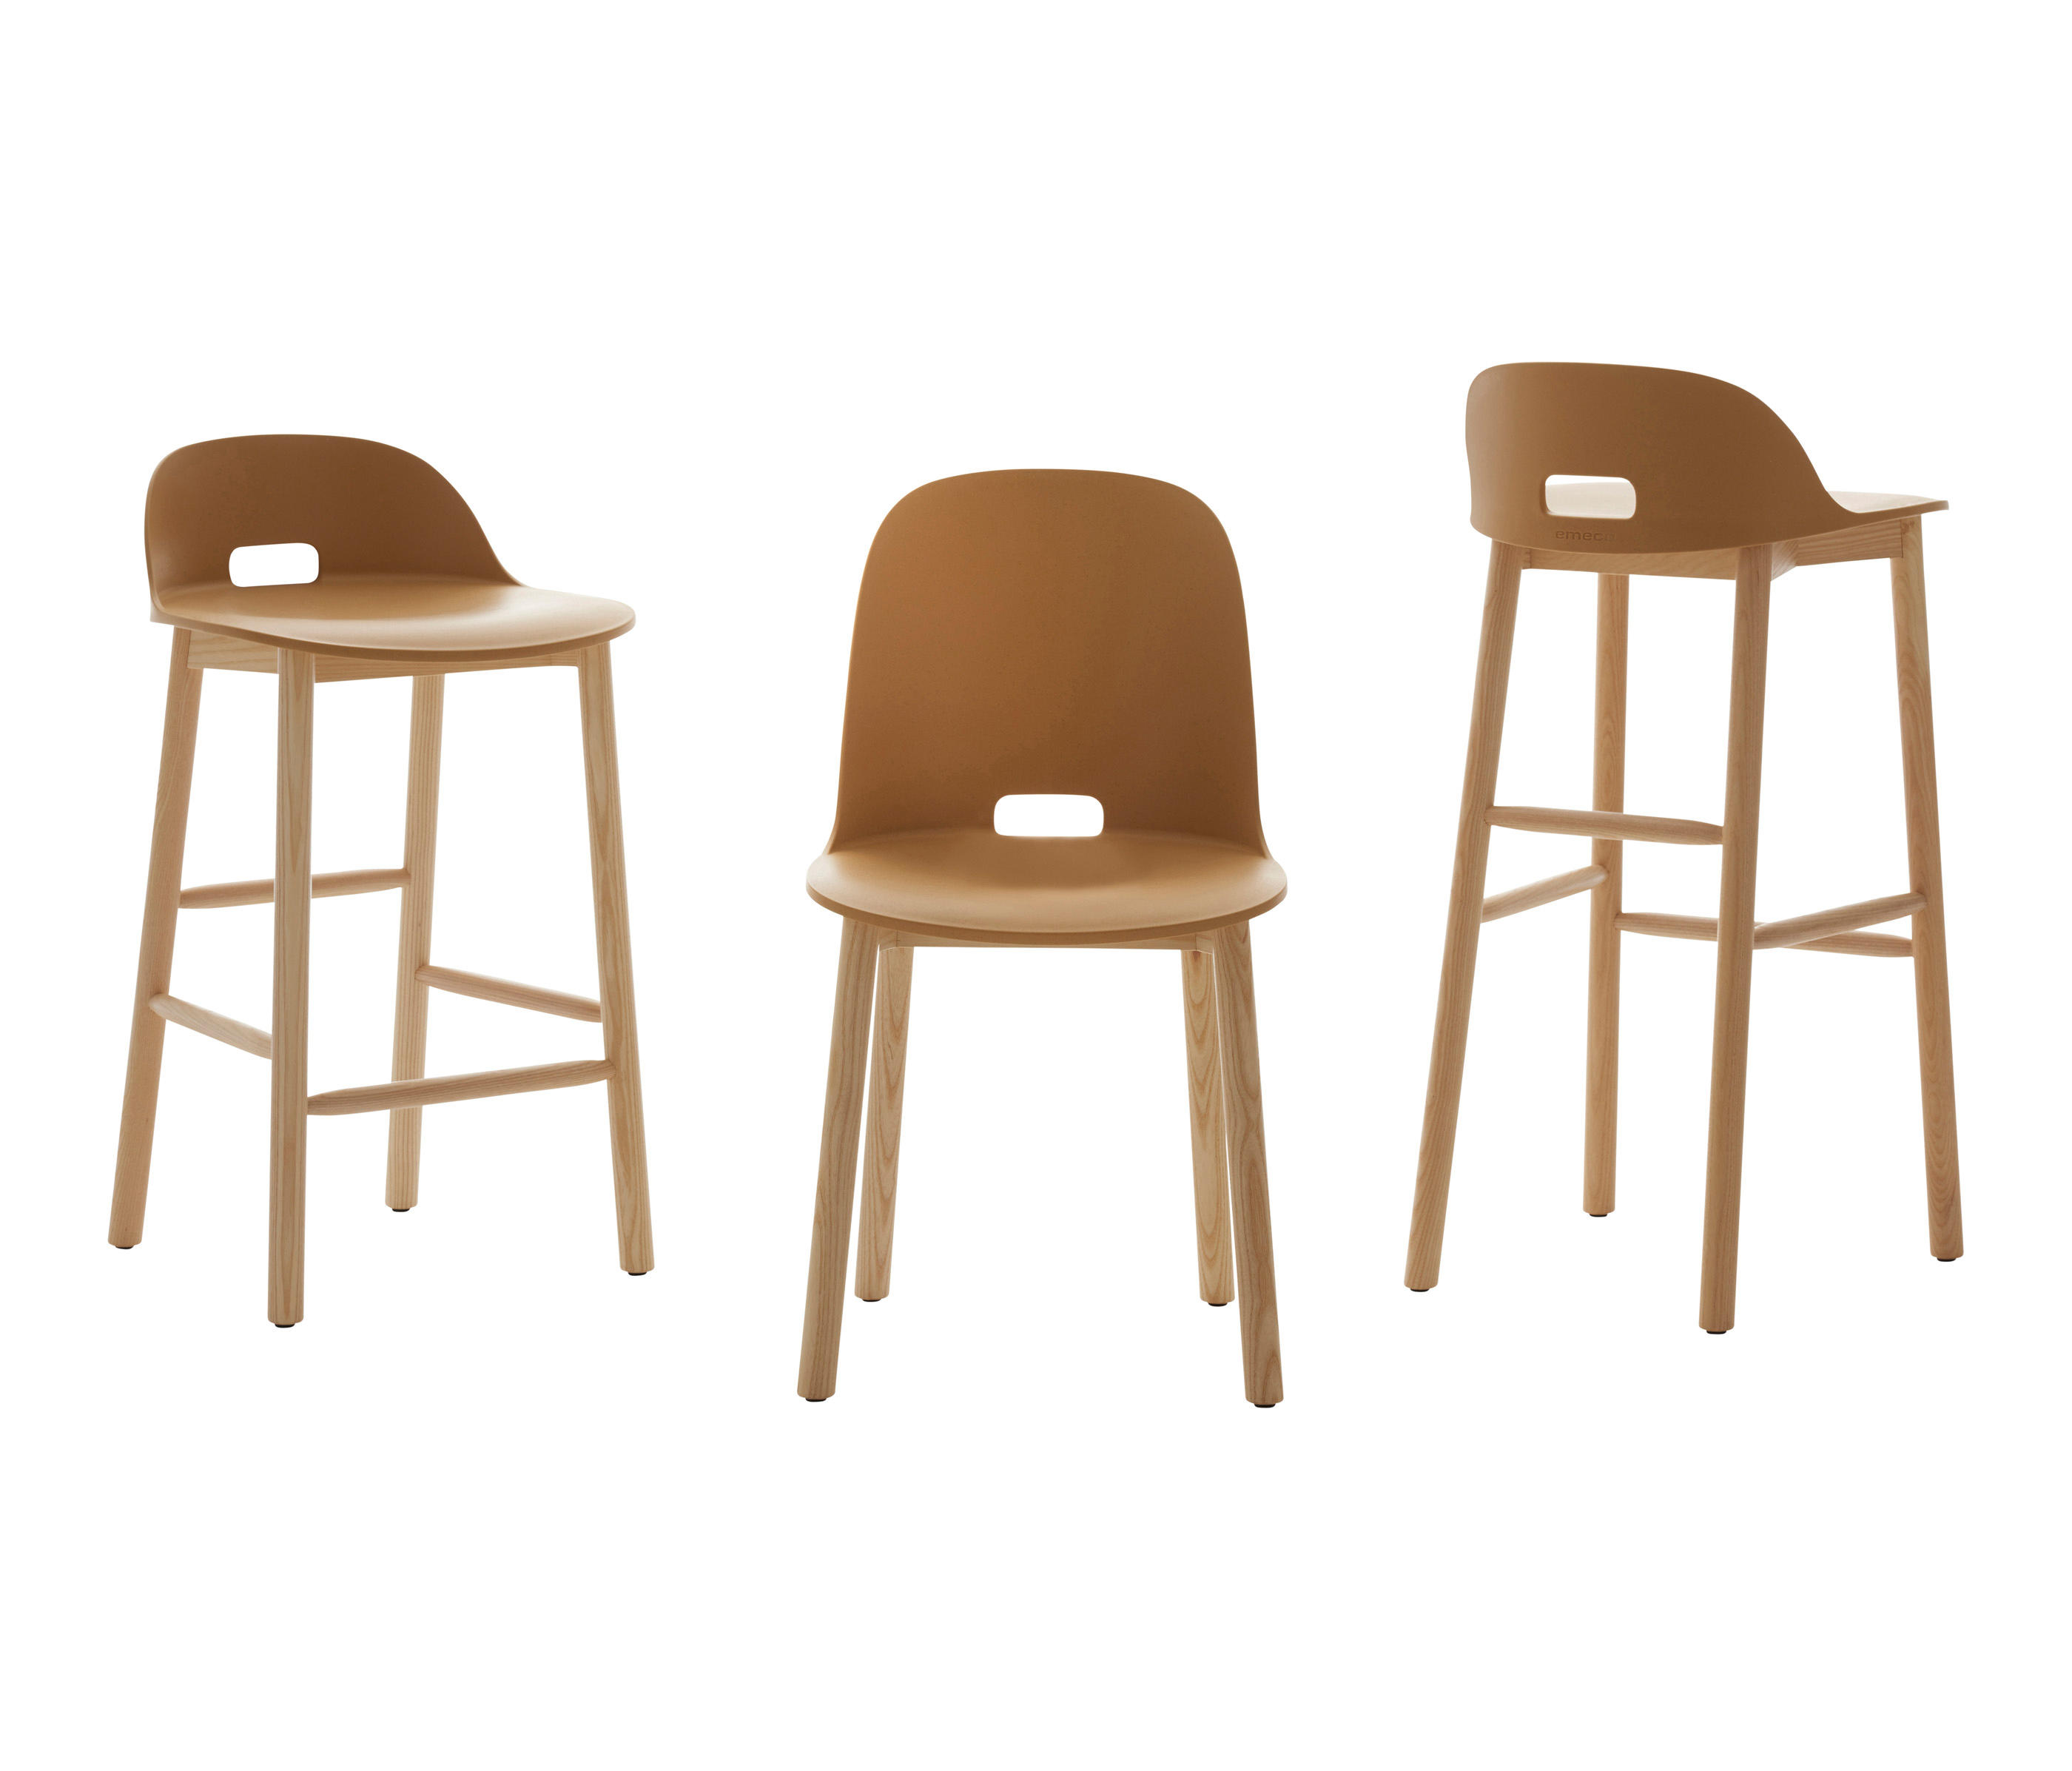 Alfi Chair High Back Chairs From Emeco Architonic